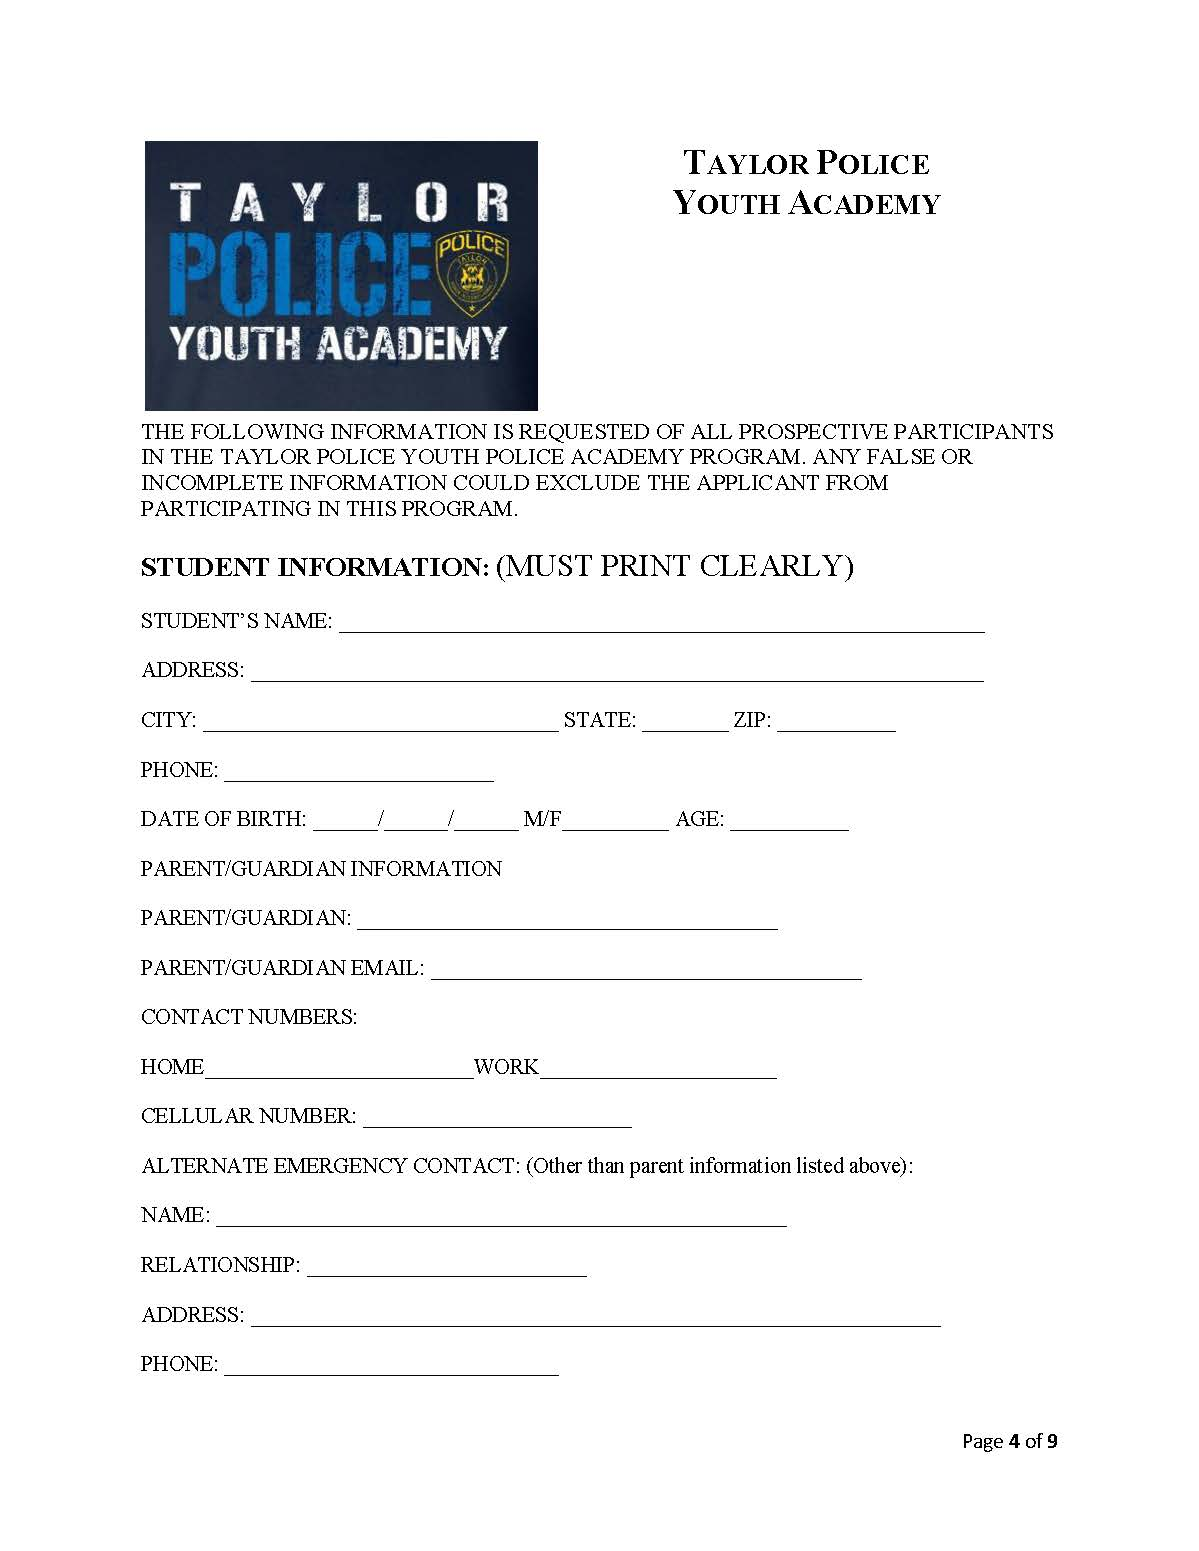 Talking Taylor Schools: STUDENTS CAN APPLY for spot in